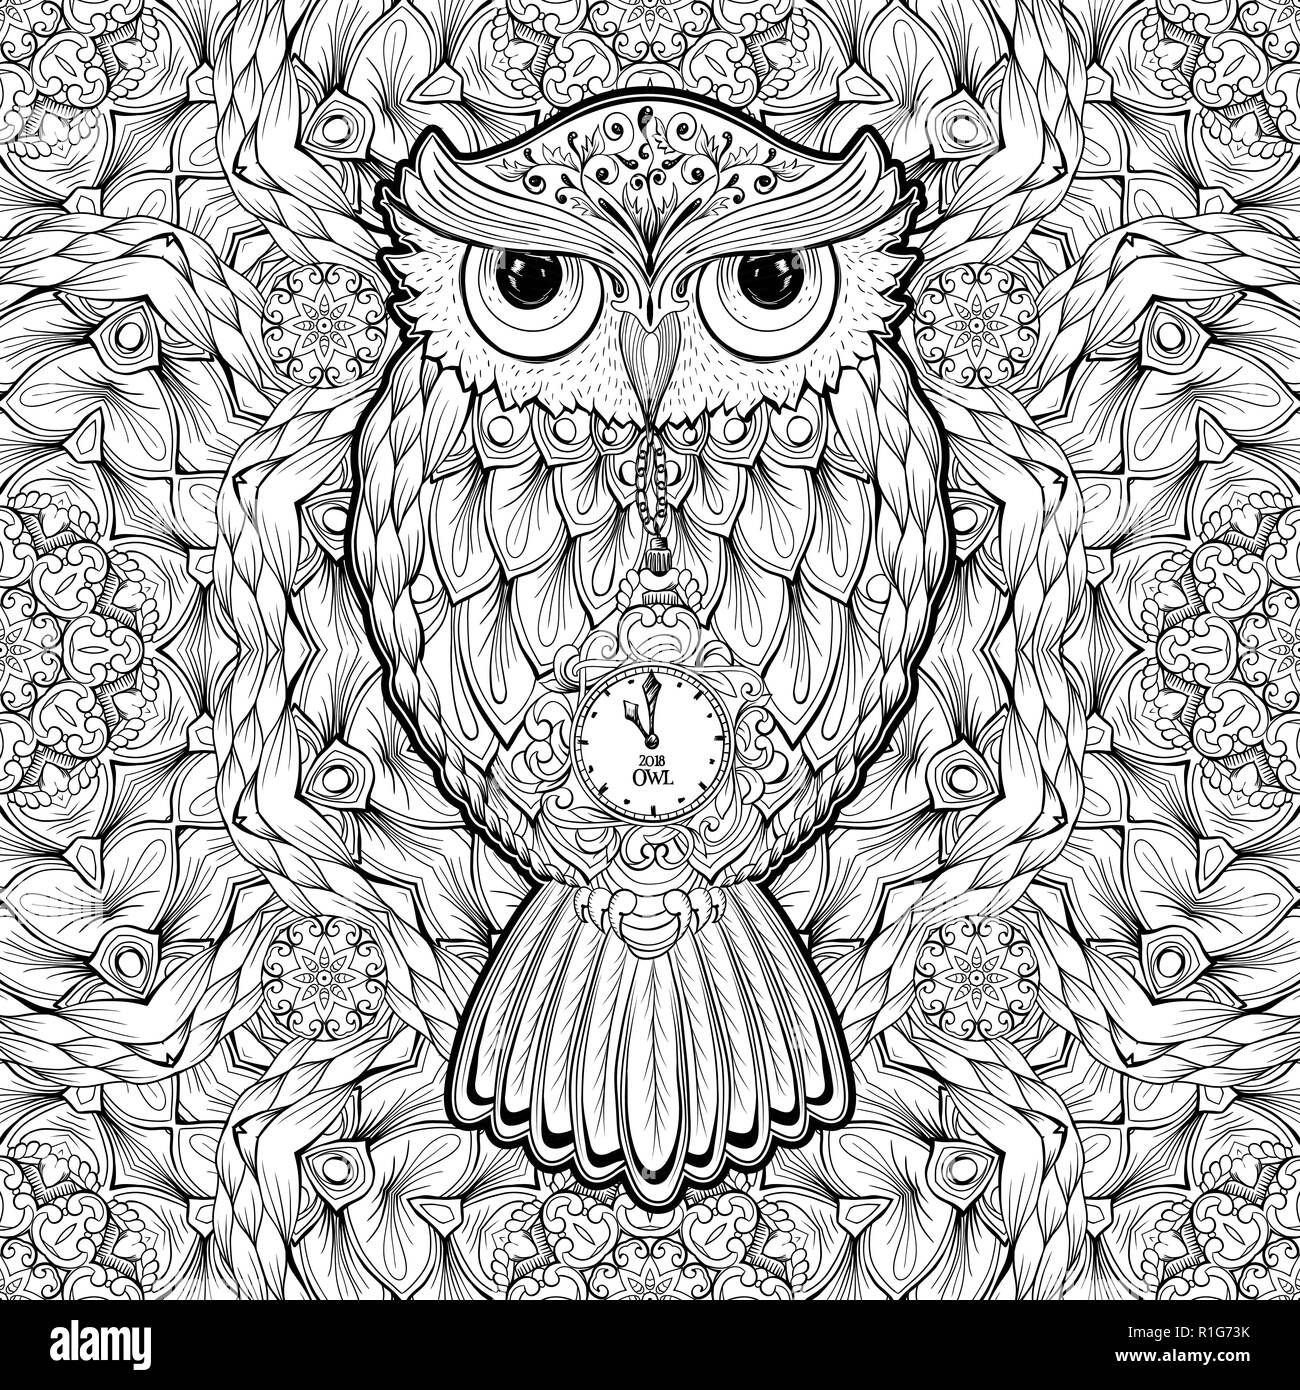 coloring pages owls.html